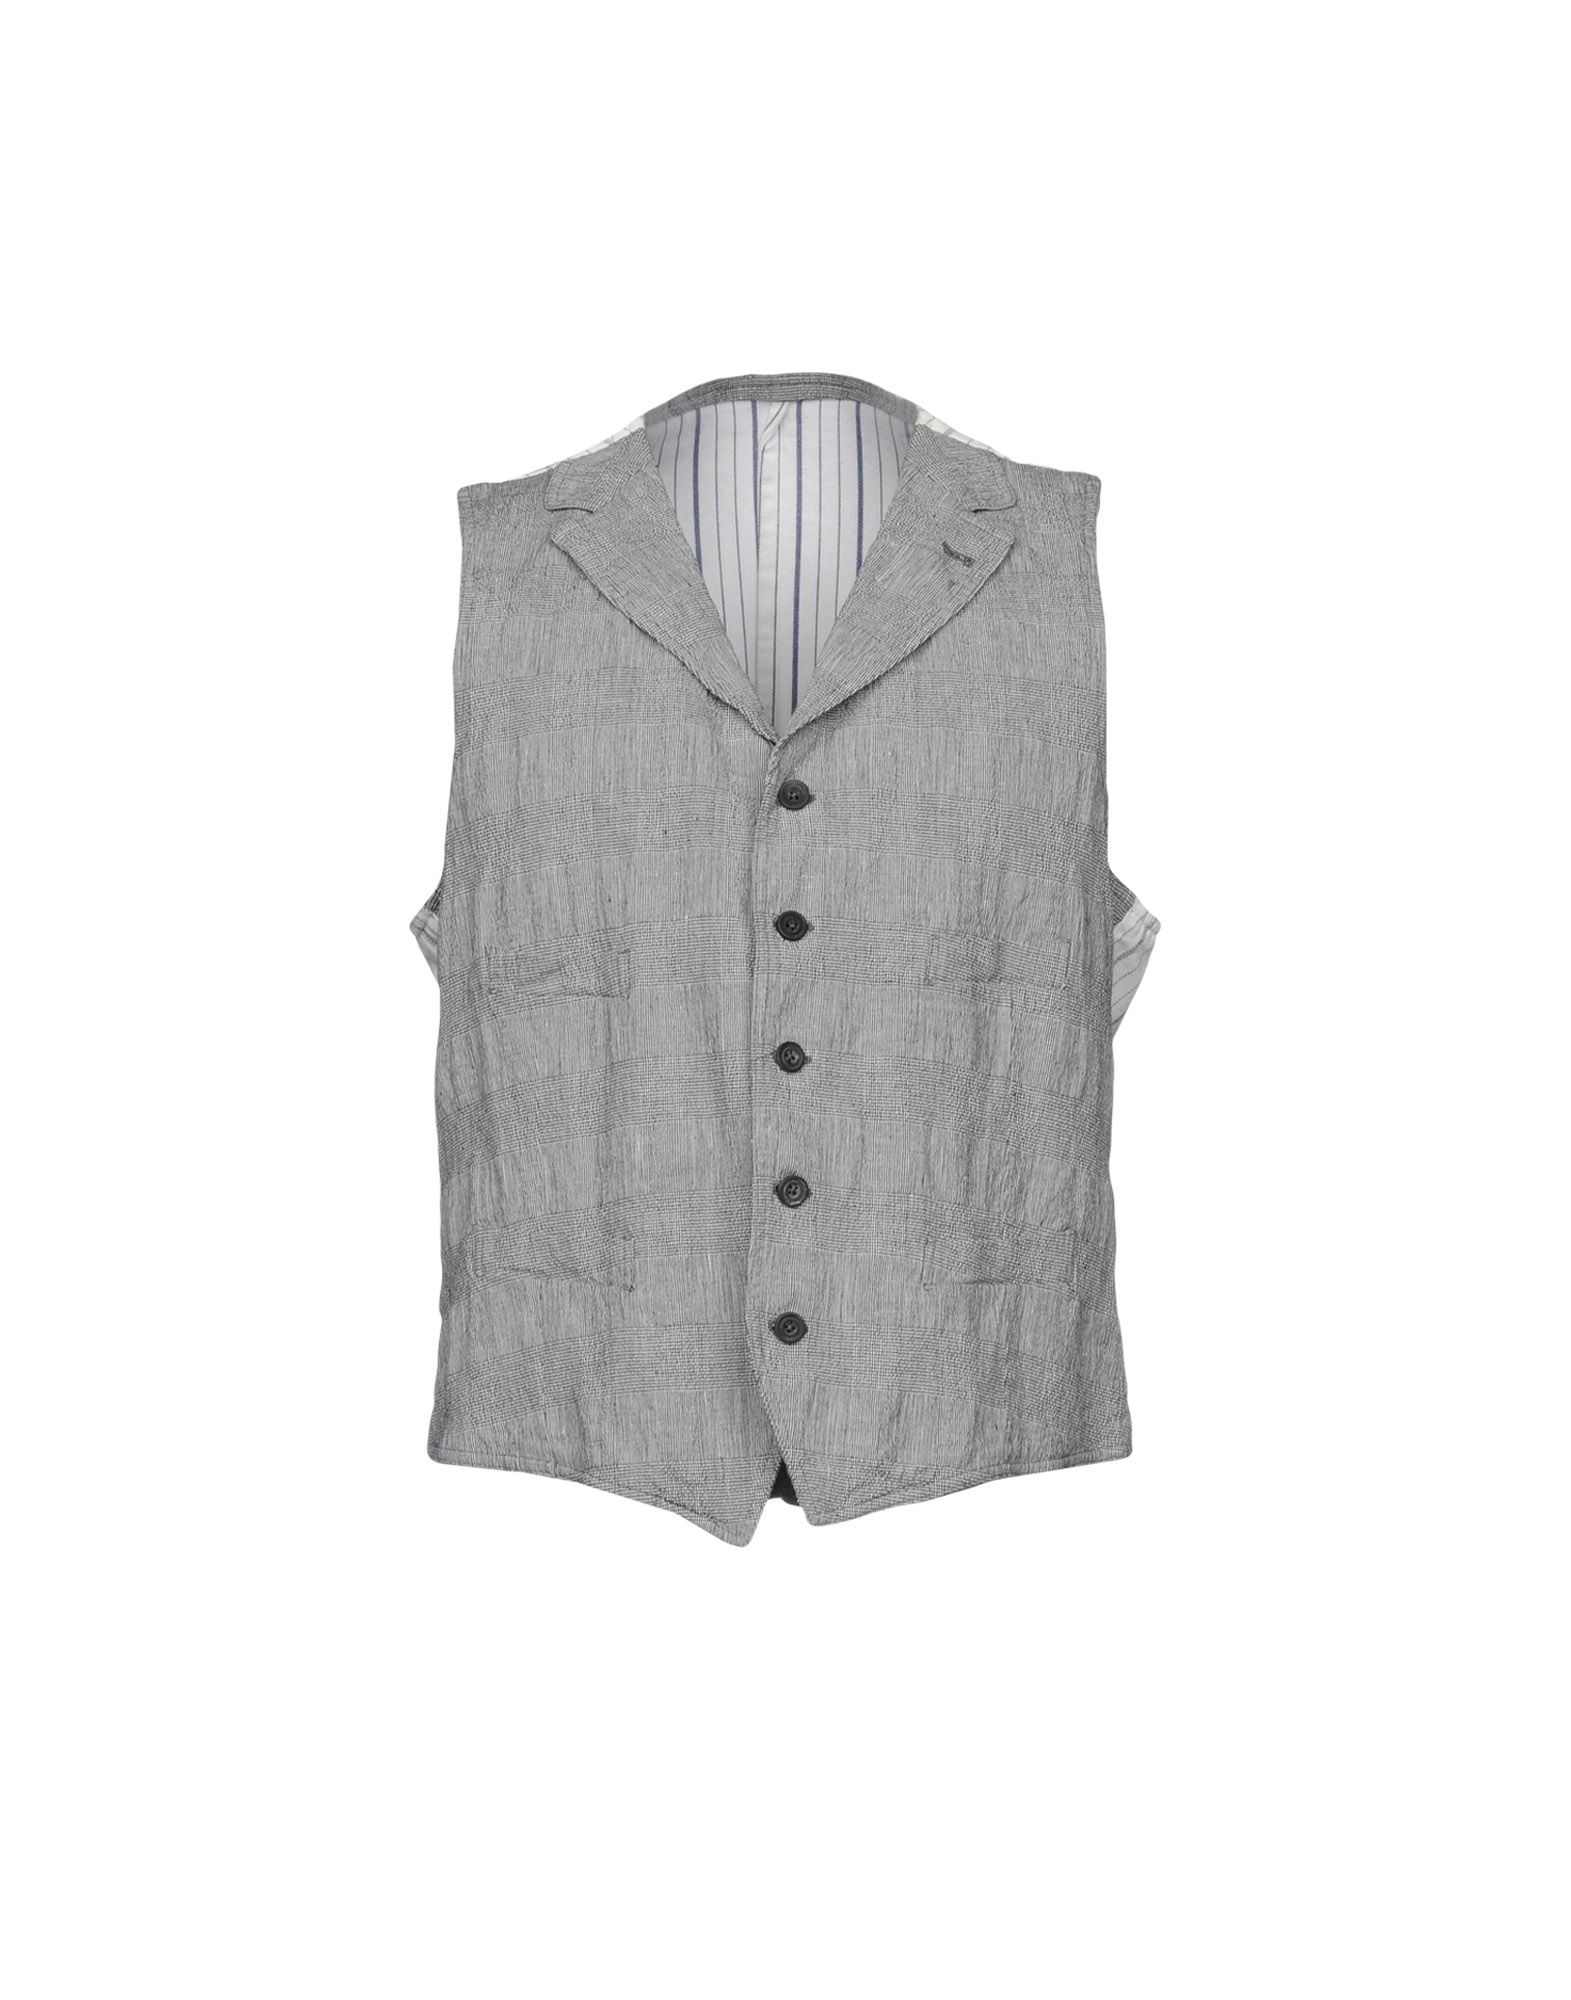 WOOSTER + LARDINI Blazer in Grey